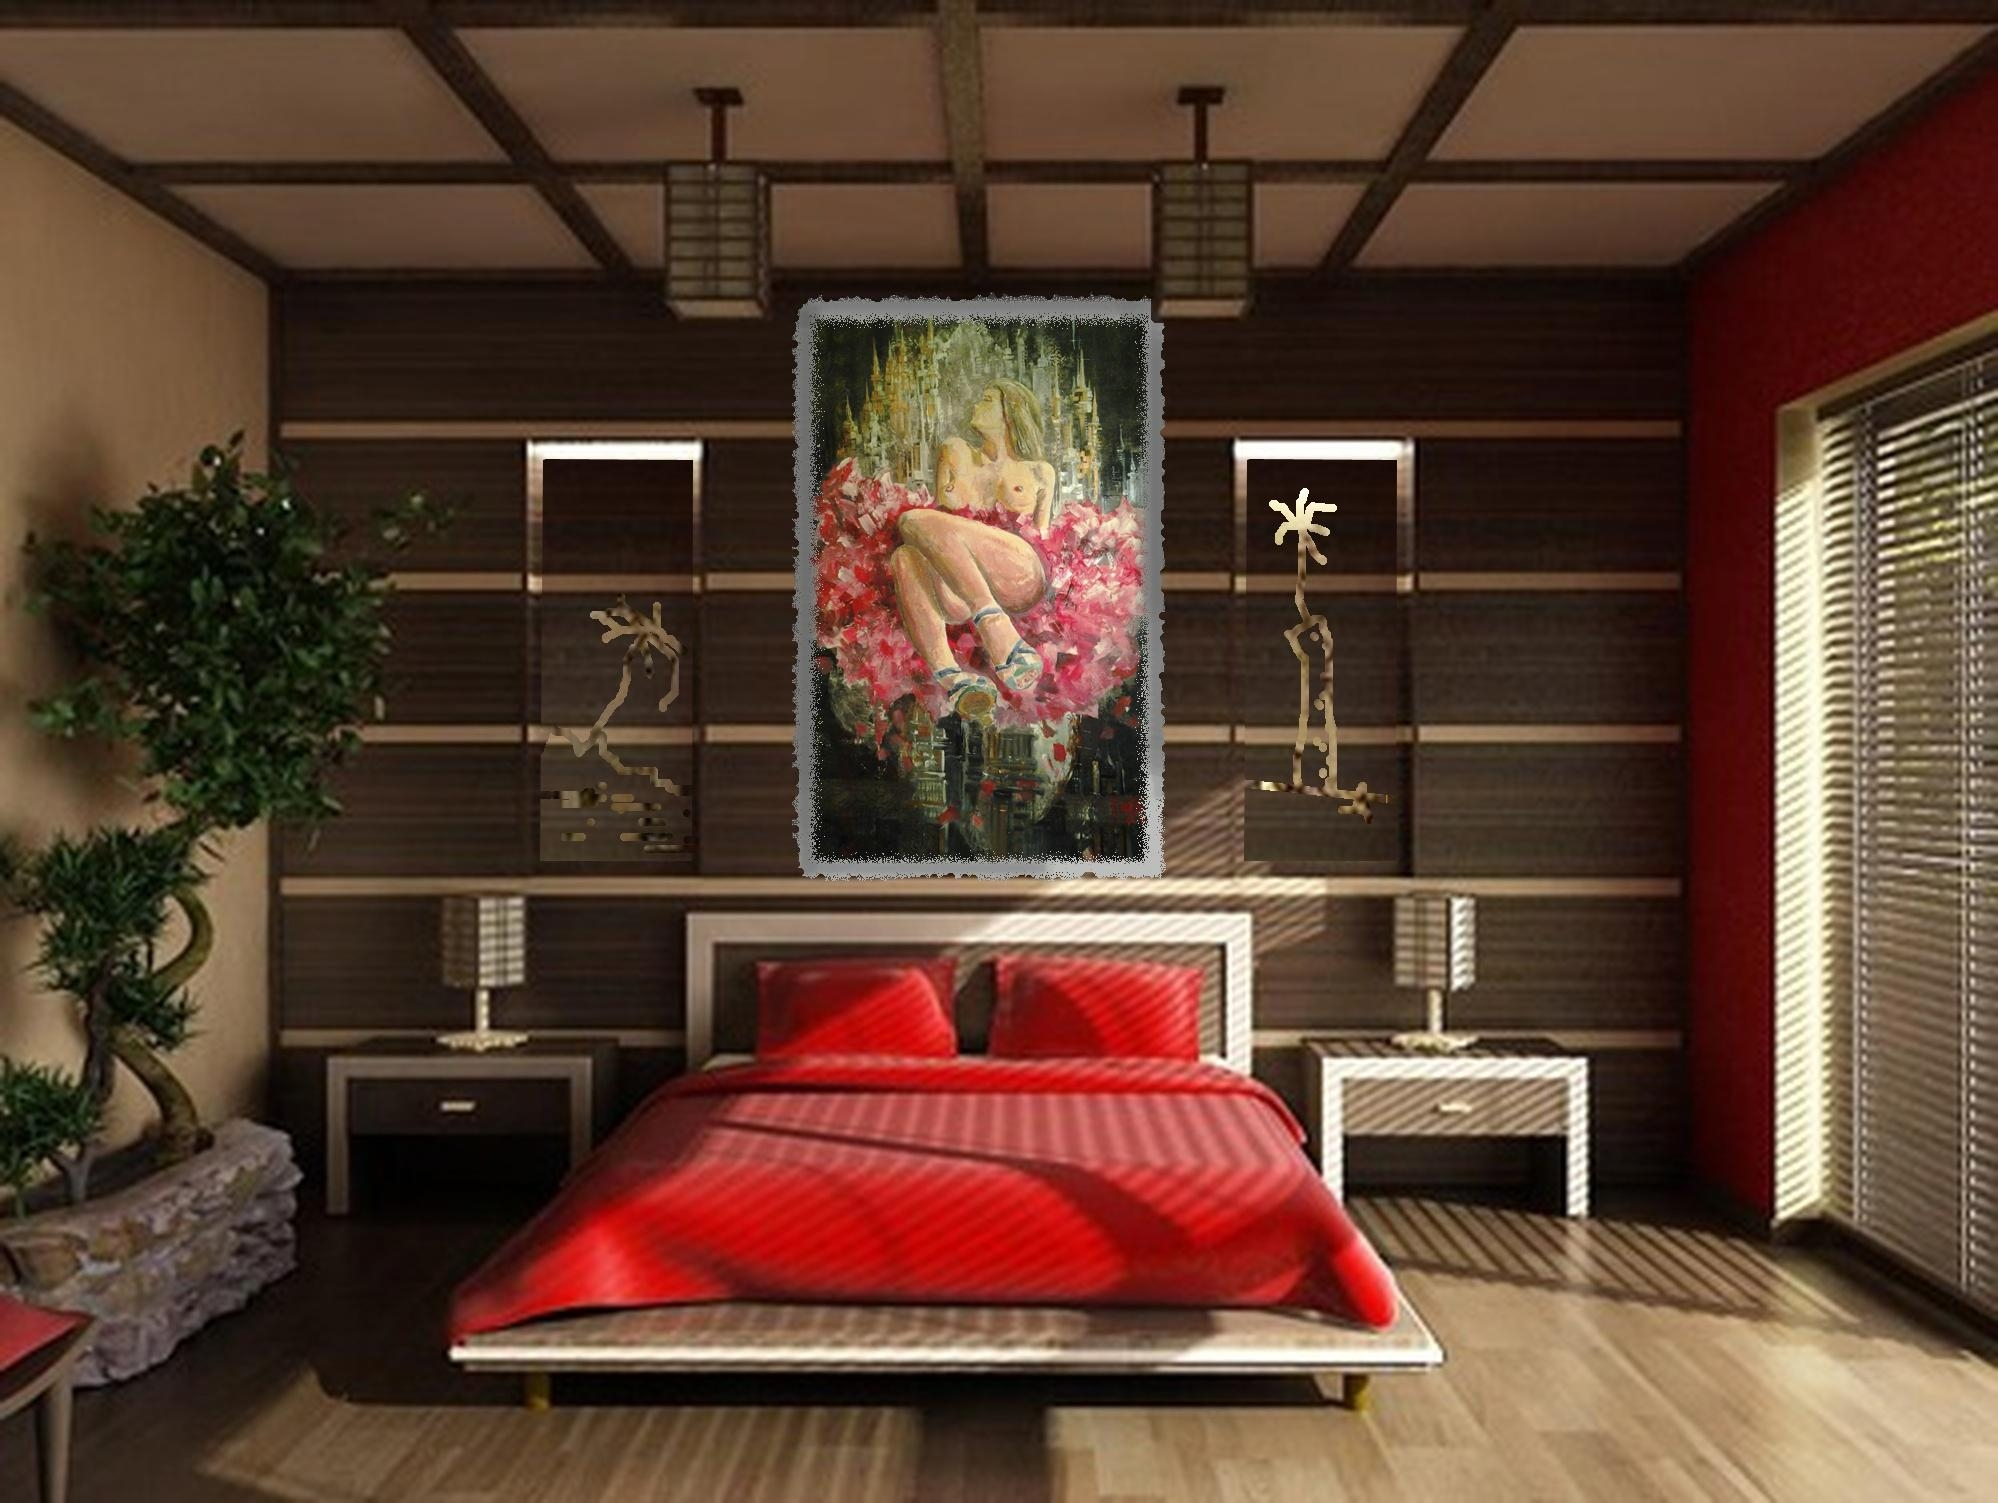 Bedroom : Asian Themed Bedroom Ideas (Image 4 of 20)